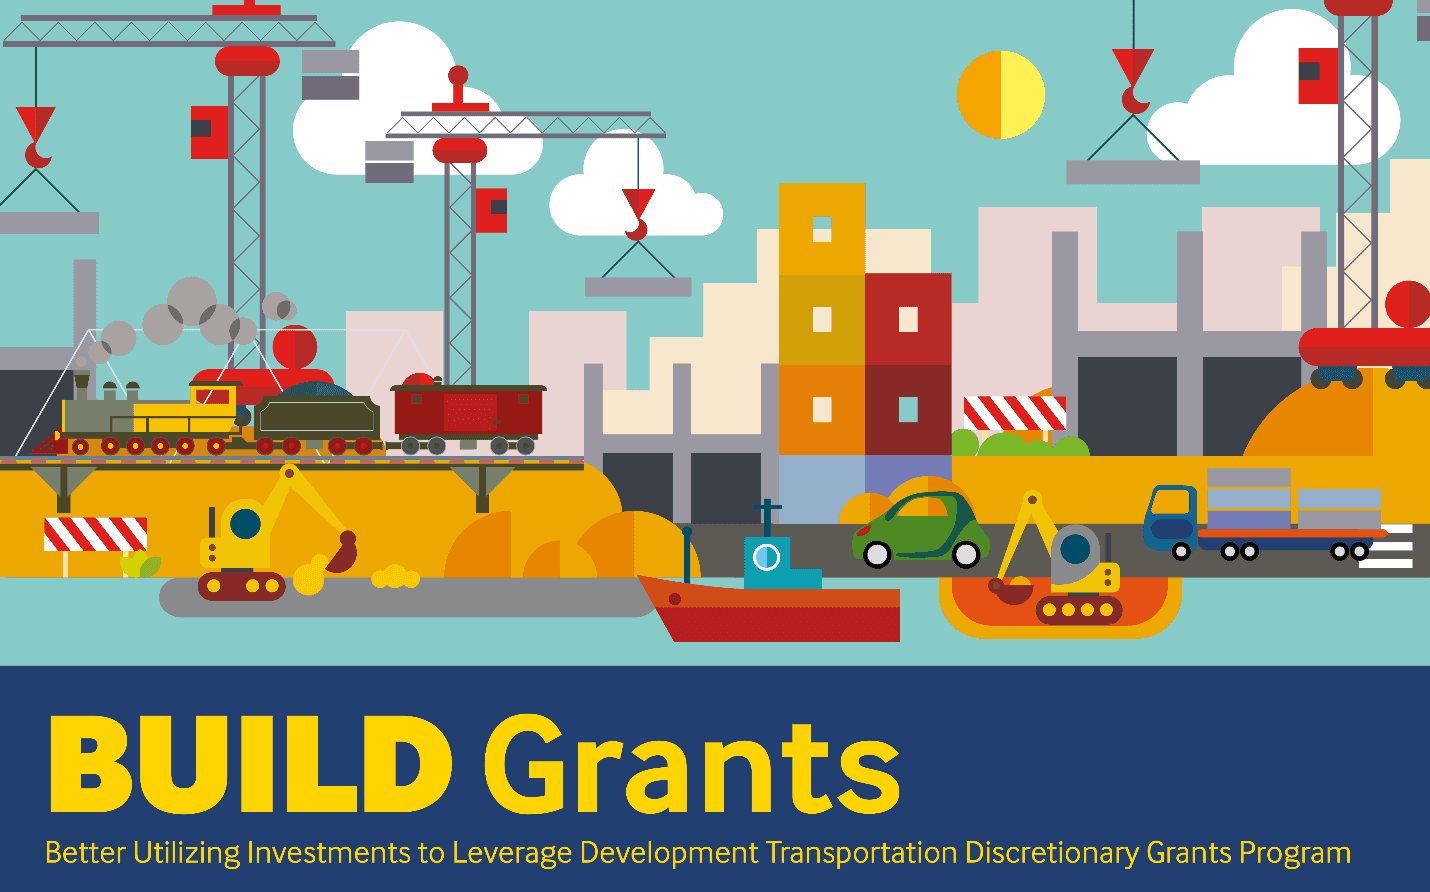 Build Grants Graphic